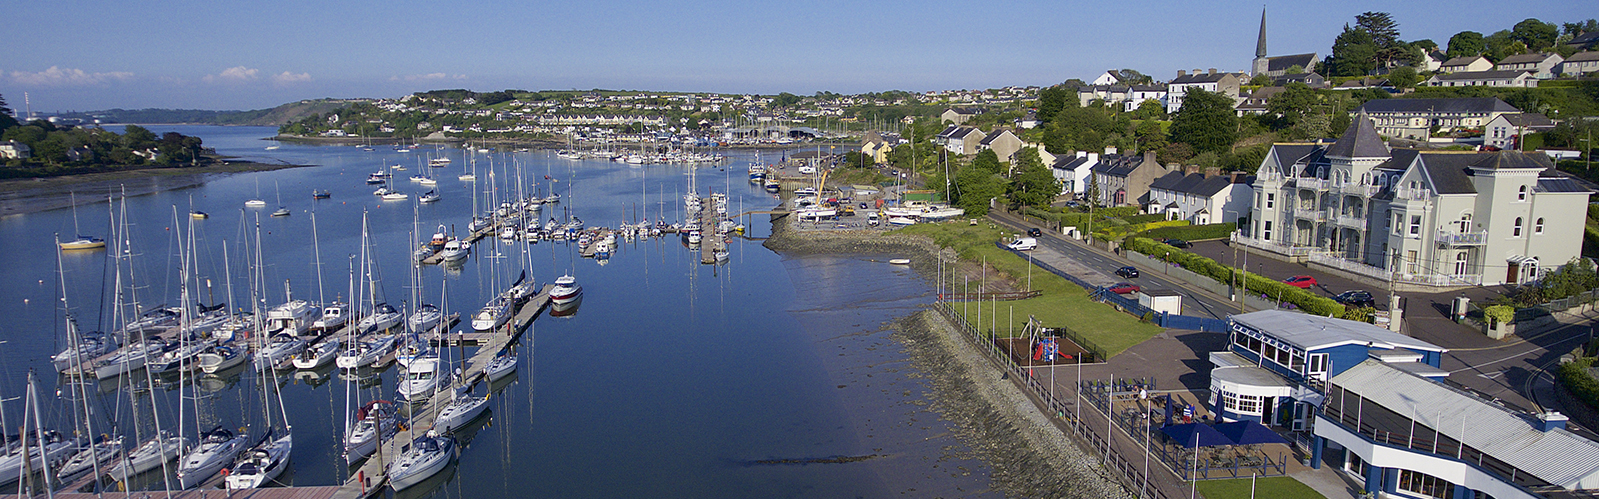 "Based in Crosshaven, Cork, we are the oldest yacht club in the world <a href=""https://www.royalcork.com/club-history/"">..Read more </a>"